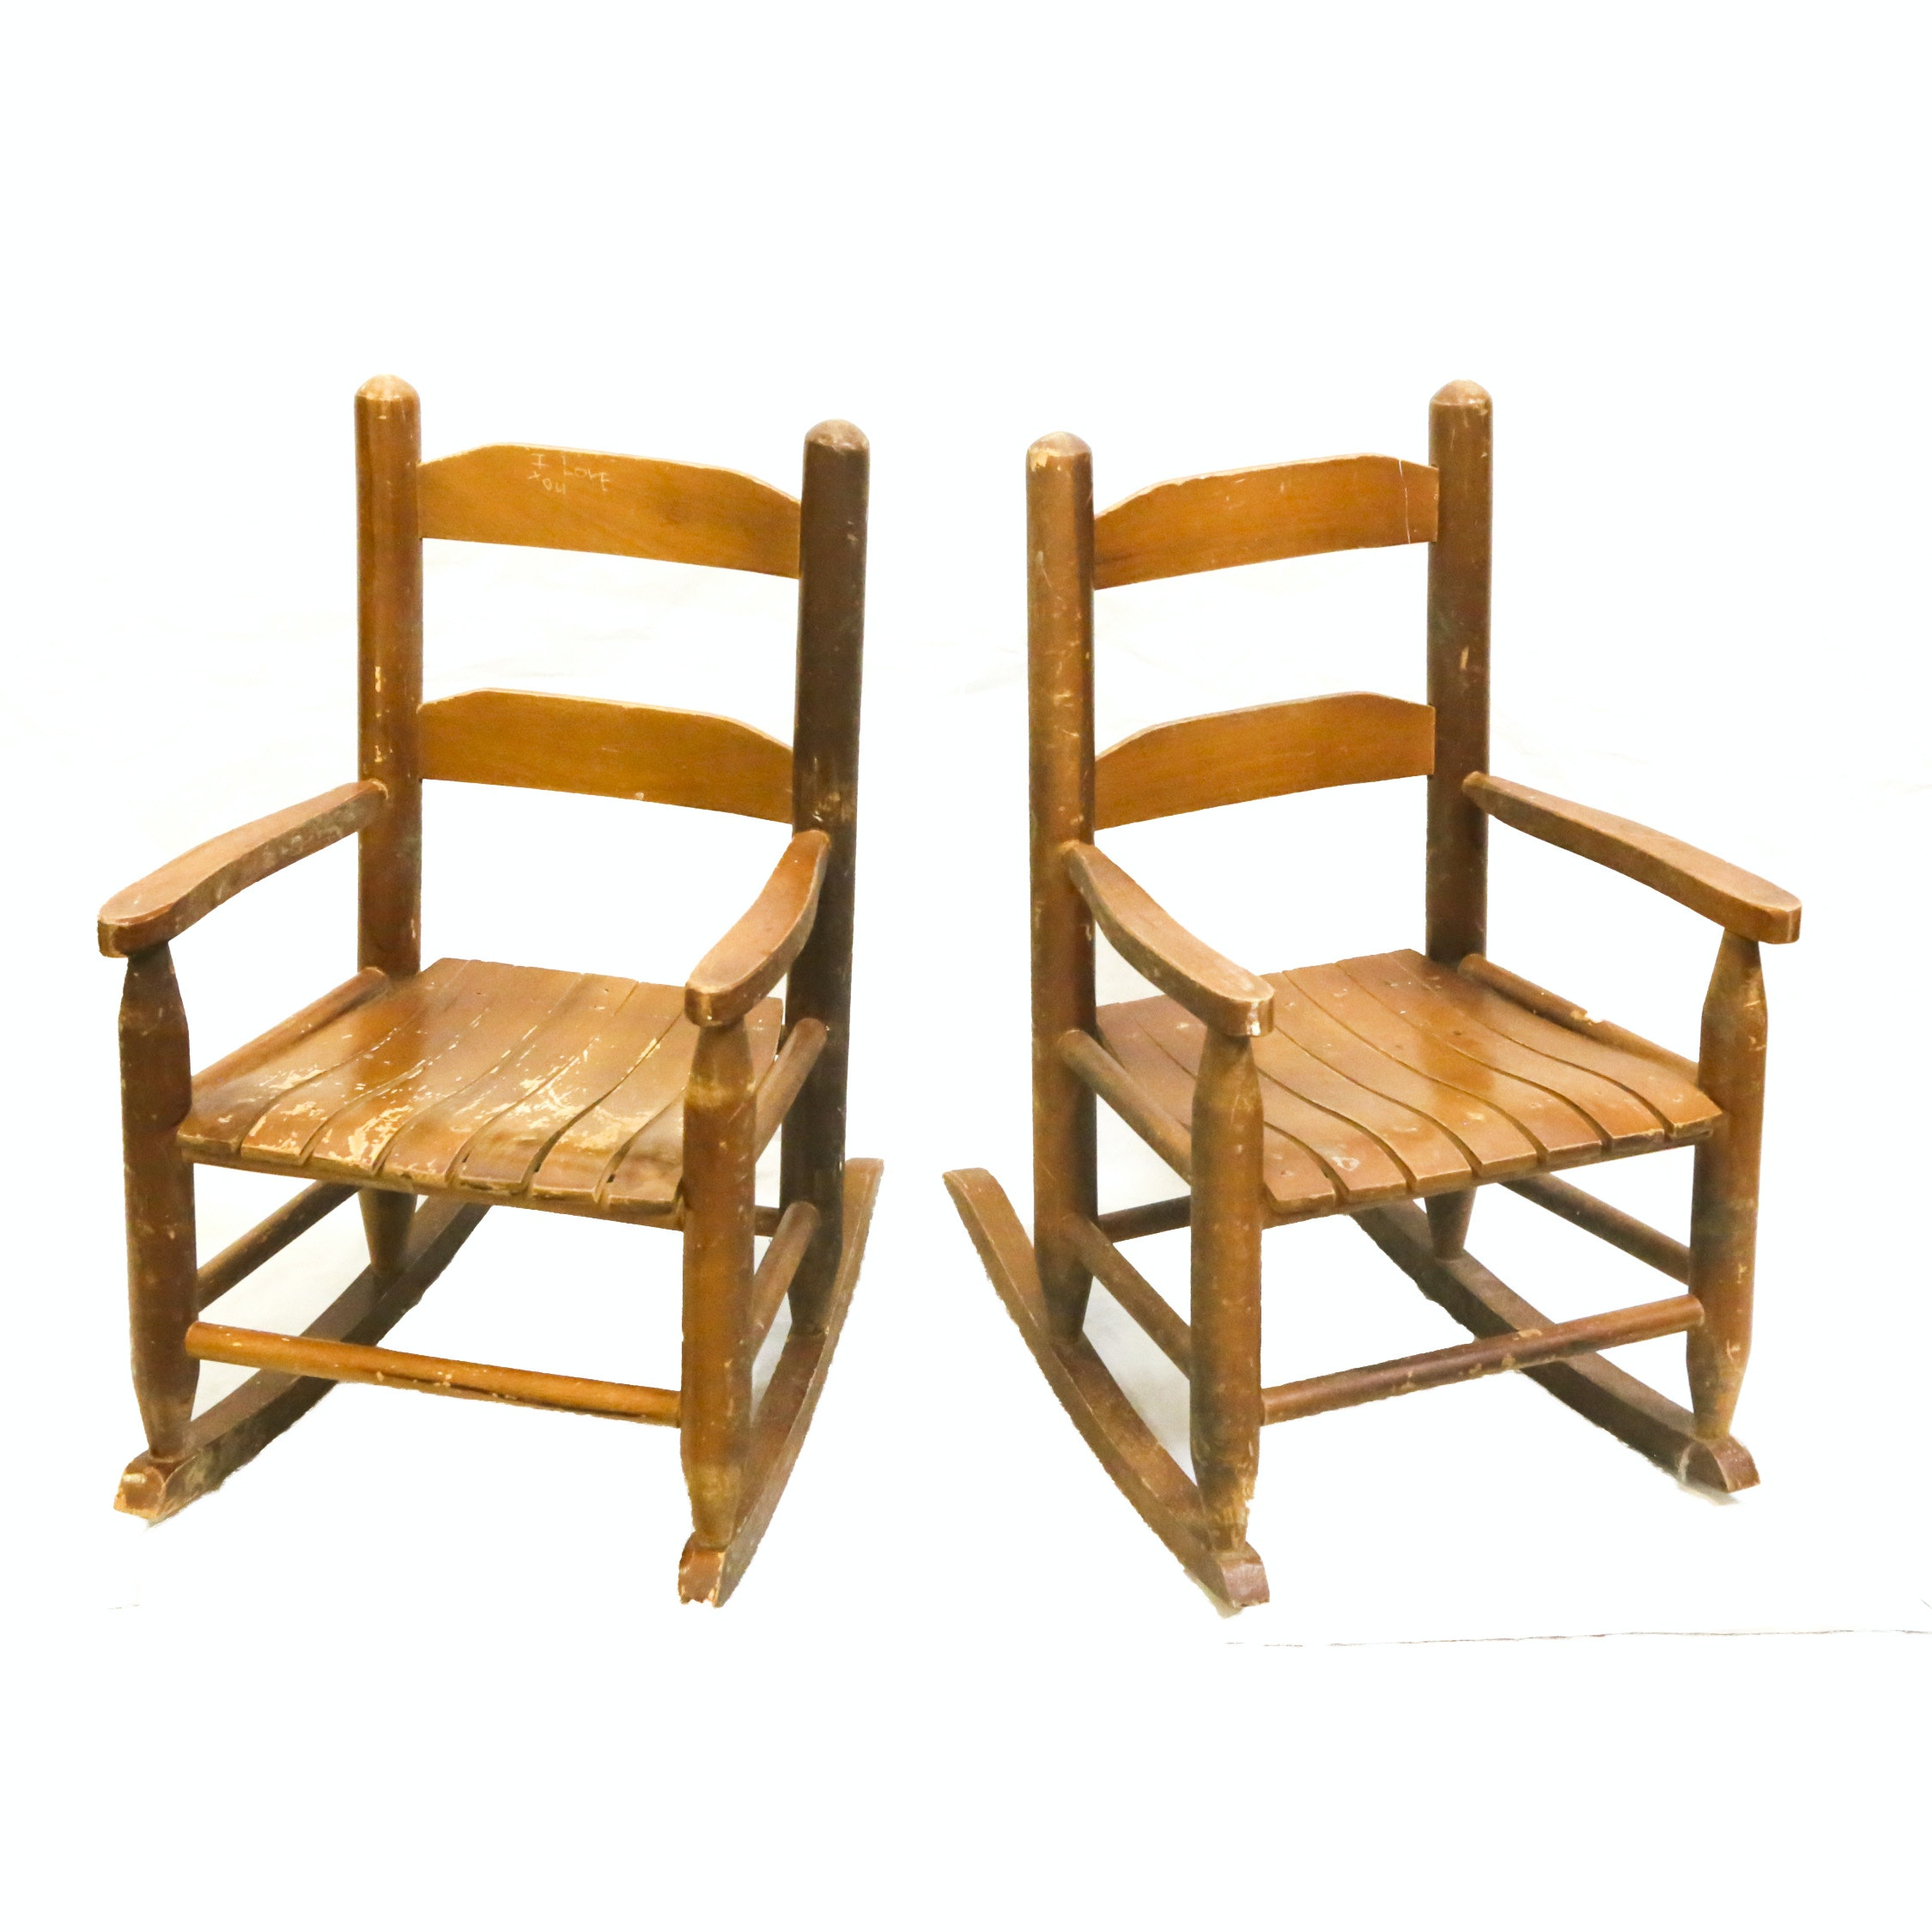 Vintage Rustic Style Children's Rocking Chairs